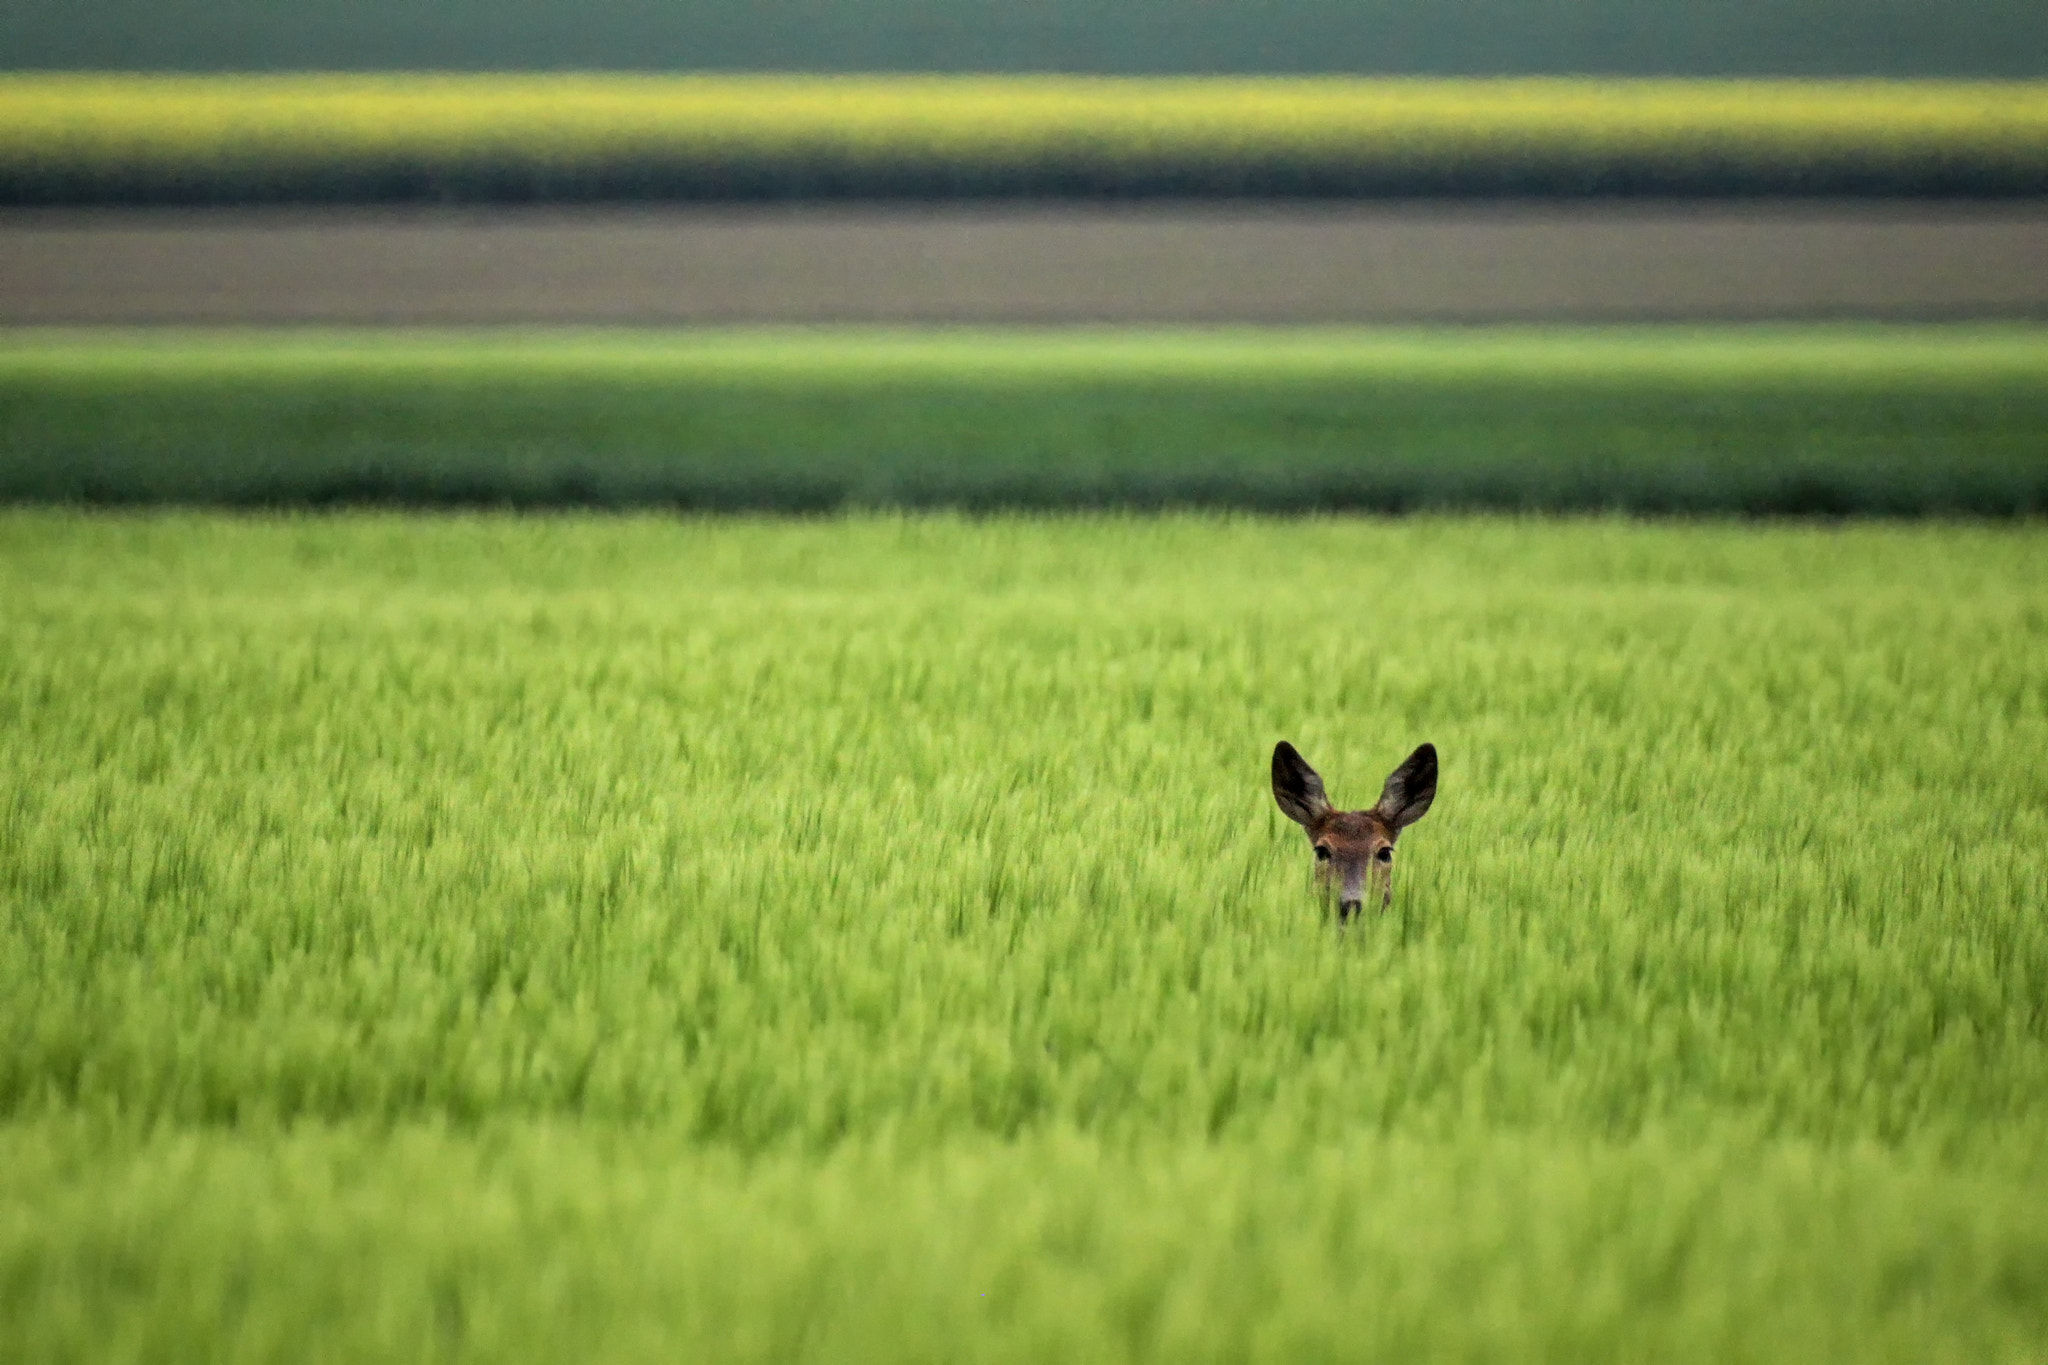 Photograph Peek-a-boo by Norbert Fritz on 500px